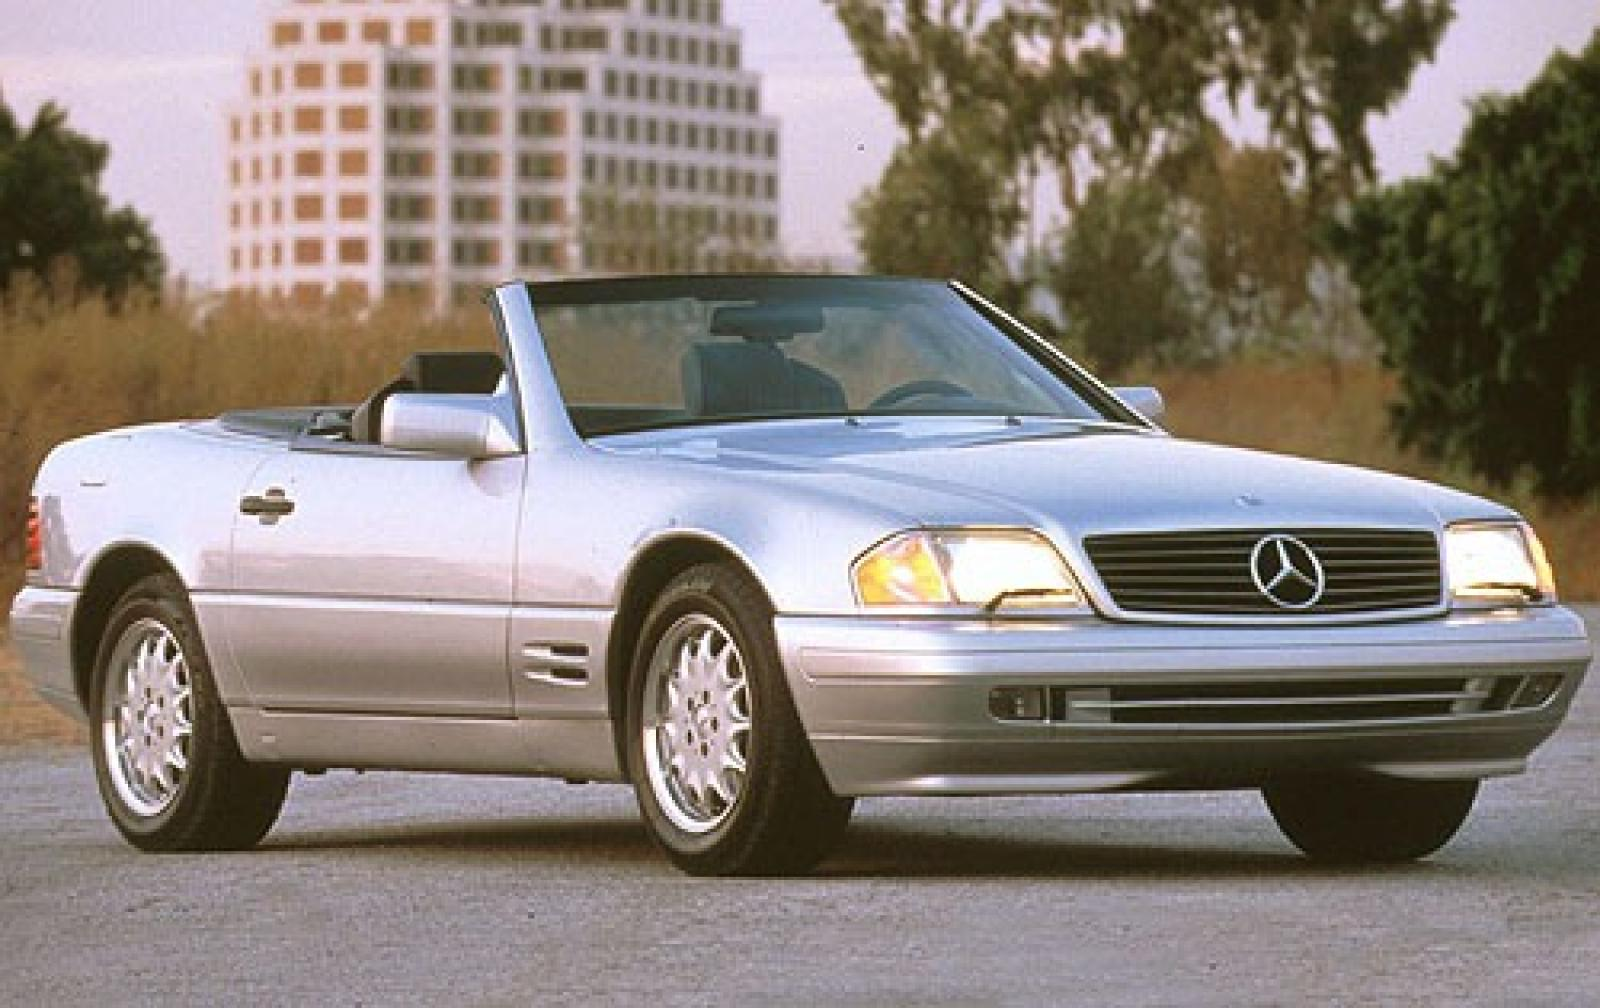 1996 Mercedes-Benz SL-Cl - Information and photos - ZombieDrive on 1996 saturn sl, 1996 mercedes amg, 1996 mercedes sl500, 1996 mercedes mx, 1996 mercedes e320 parts, 1996 mercedes e class, 1996 mercedes sl320, 1996 mercedes s class, 1996 mercedes slk, 1996 mercedes clk, 1996 mercedes 450sl, 1996 mercedes ml, 1996 gmc sl, 1996 oldsmobile sl, 1996 mercedes c class, 1996 mercedes e320 gold, 1996 mercedes sel, 1996 mercedes black, 1996 mercedes 500sl, 1996 mercedes convertible,